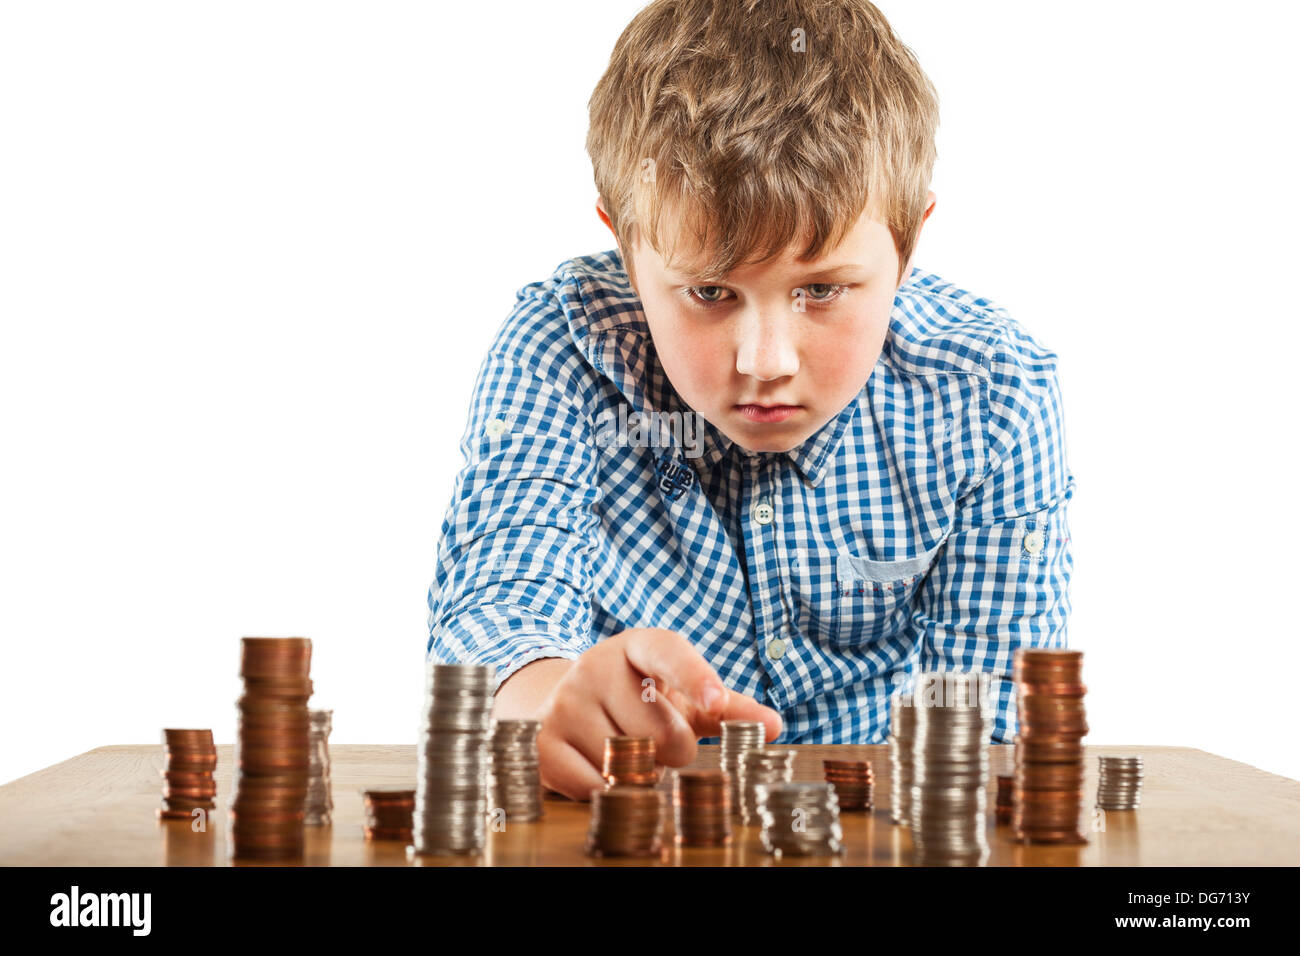 A young boy of 10 counts his money and stacks it up - Stock Image